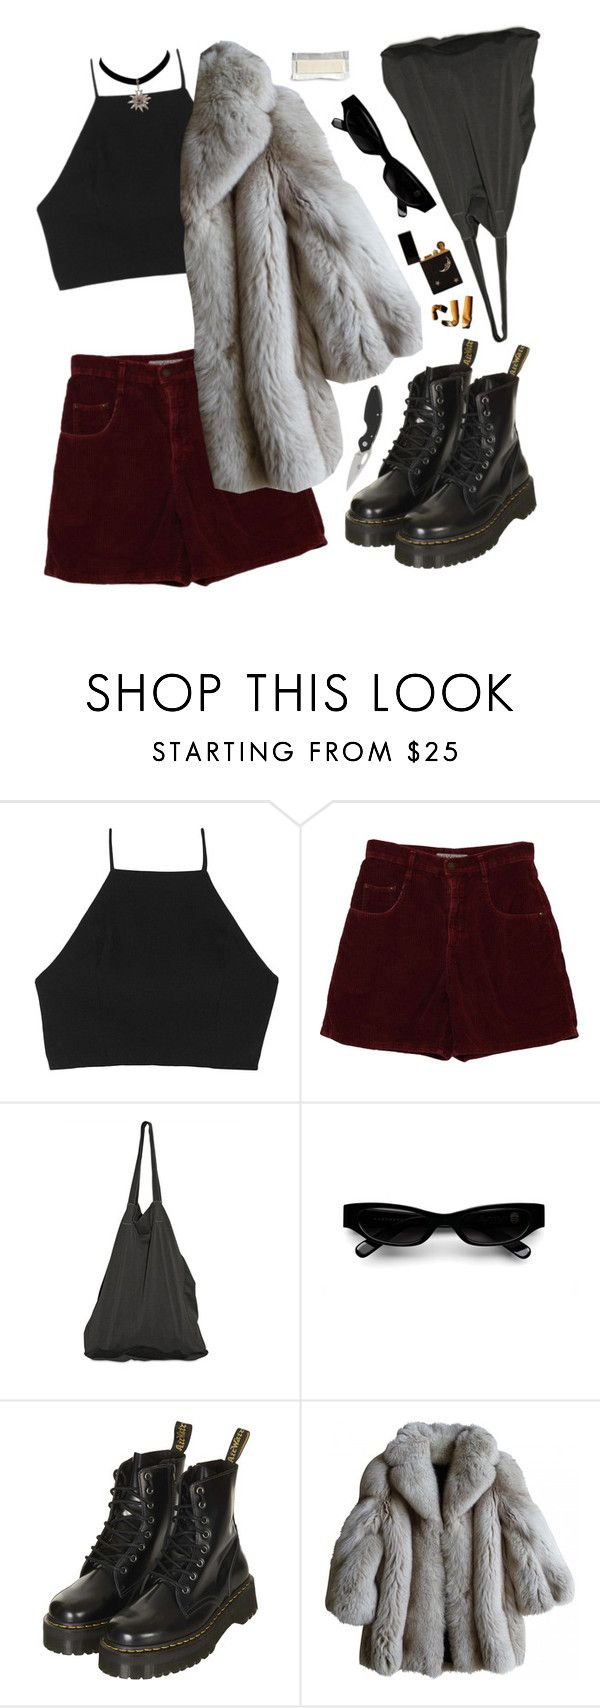 """matilda"" by grimess ❤ liked on Polyvore featuring rag & bone, Laneus, Acne Studios, Topshop and vintage"